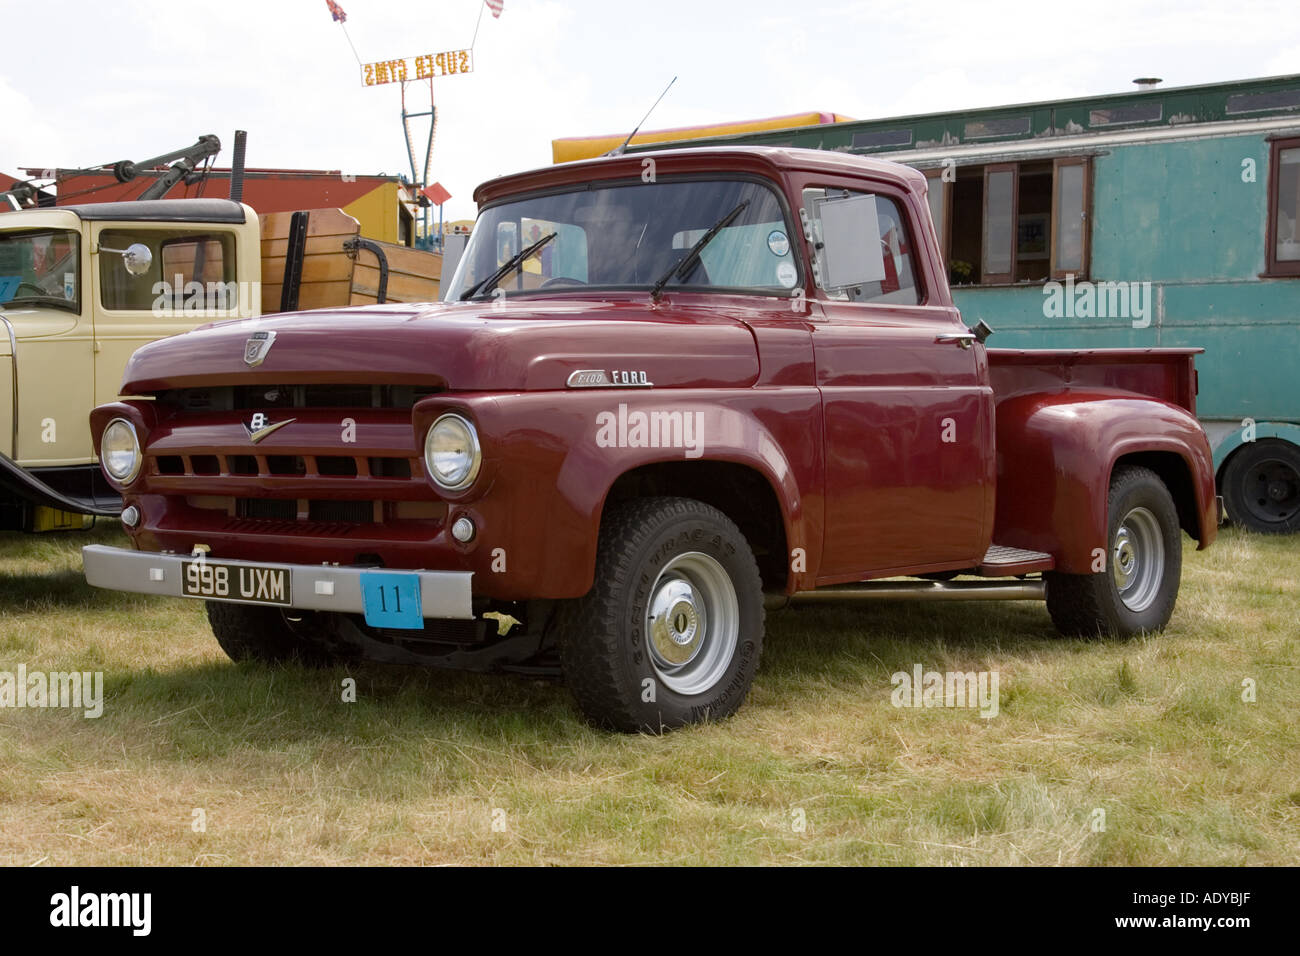 Ford F100 Pickup Truck Stock Photos 1964 Short Bed Ultility On Display At Rougham Fair In June 2006 Image